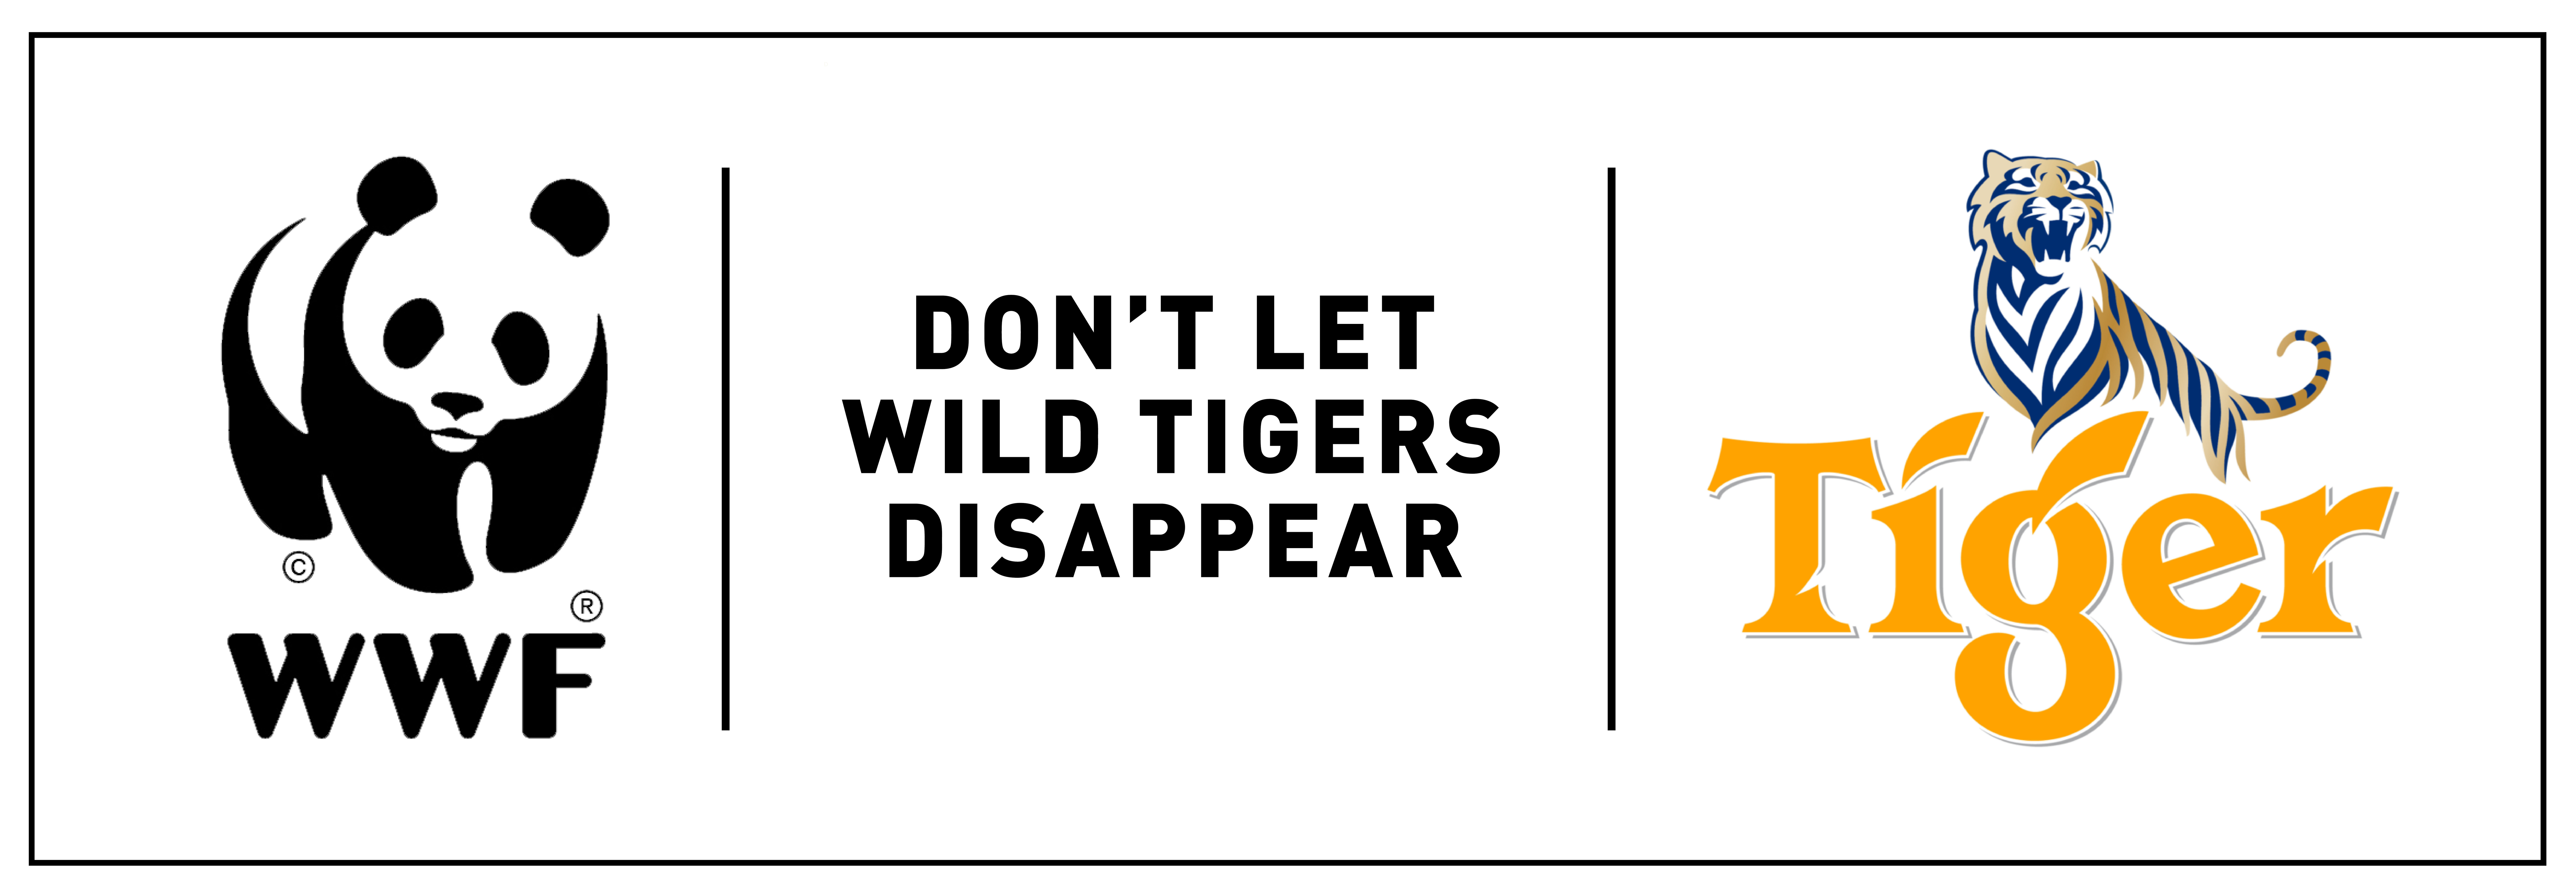 JOIN THE MOVEMENT TO HELP DOUBLE WILD TIGERS